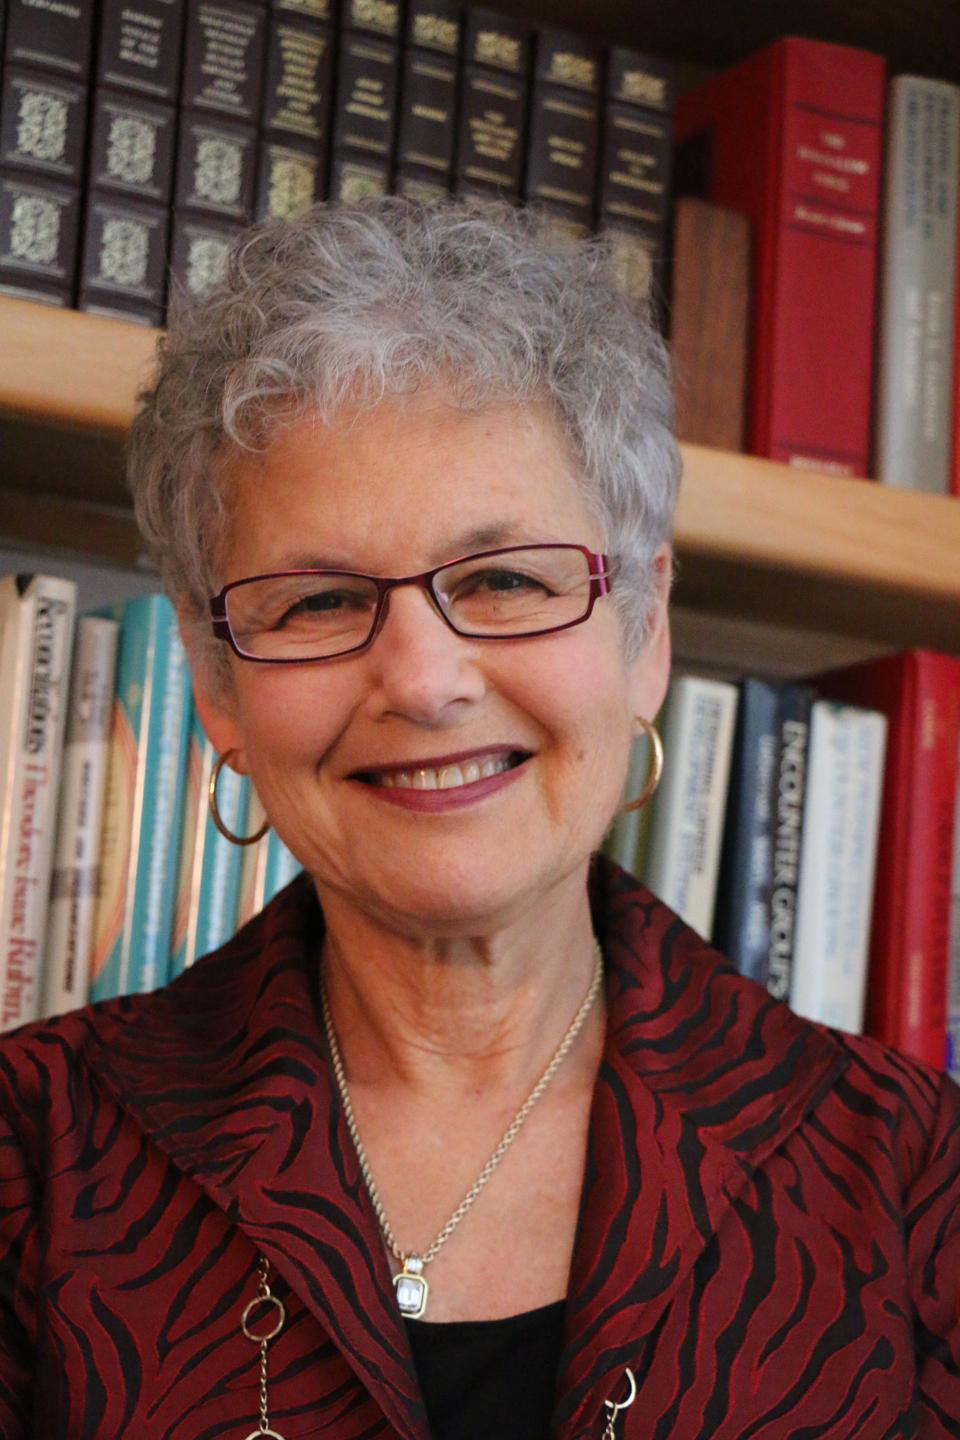 Dr. Kathy Kram is one of the leading voices in the study of mentorship.